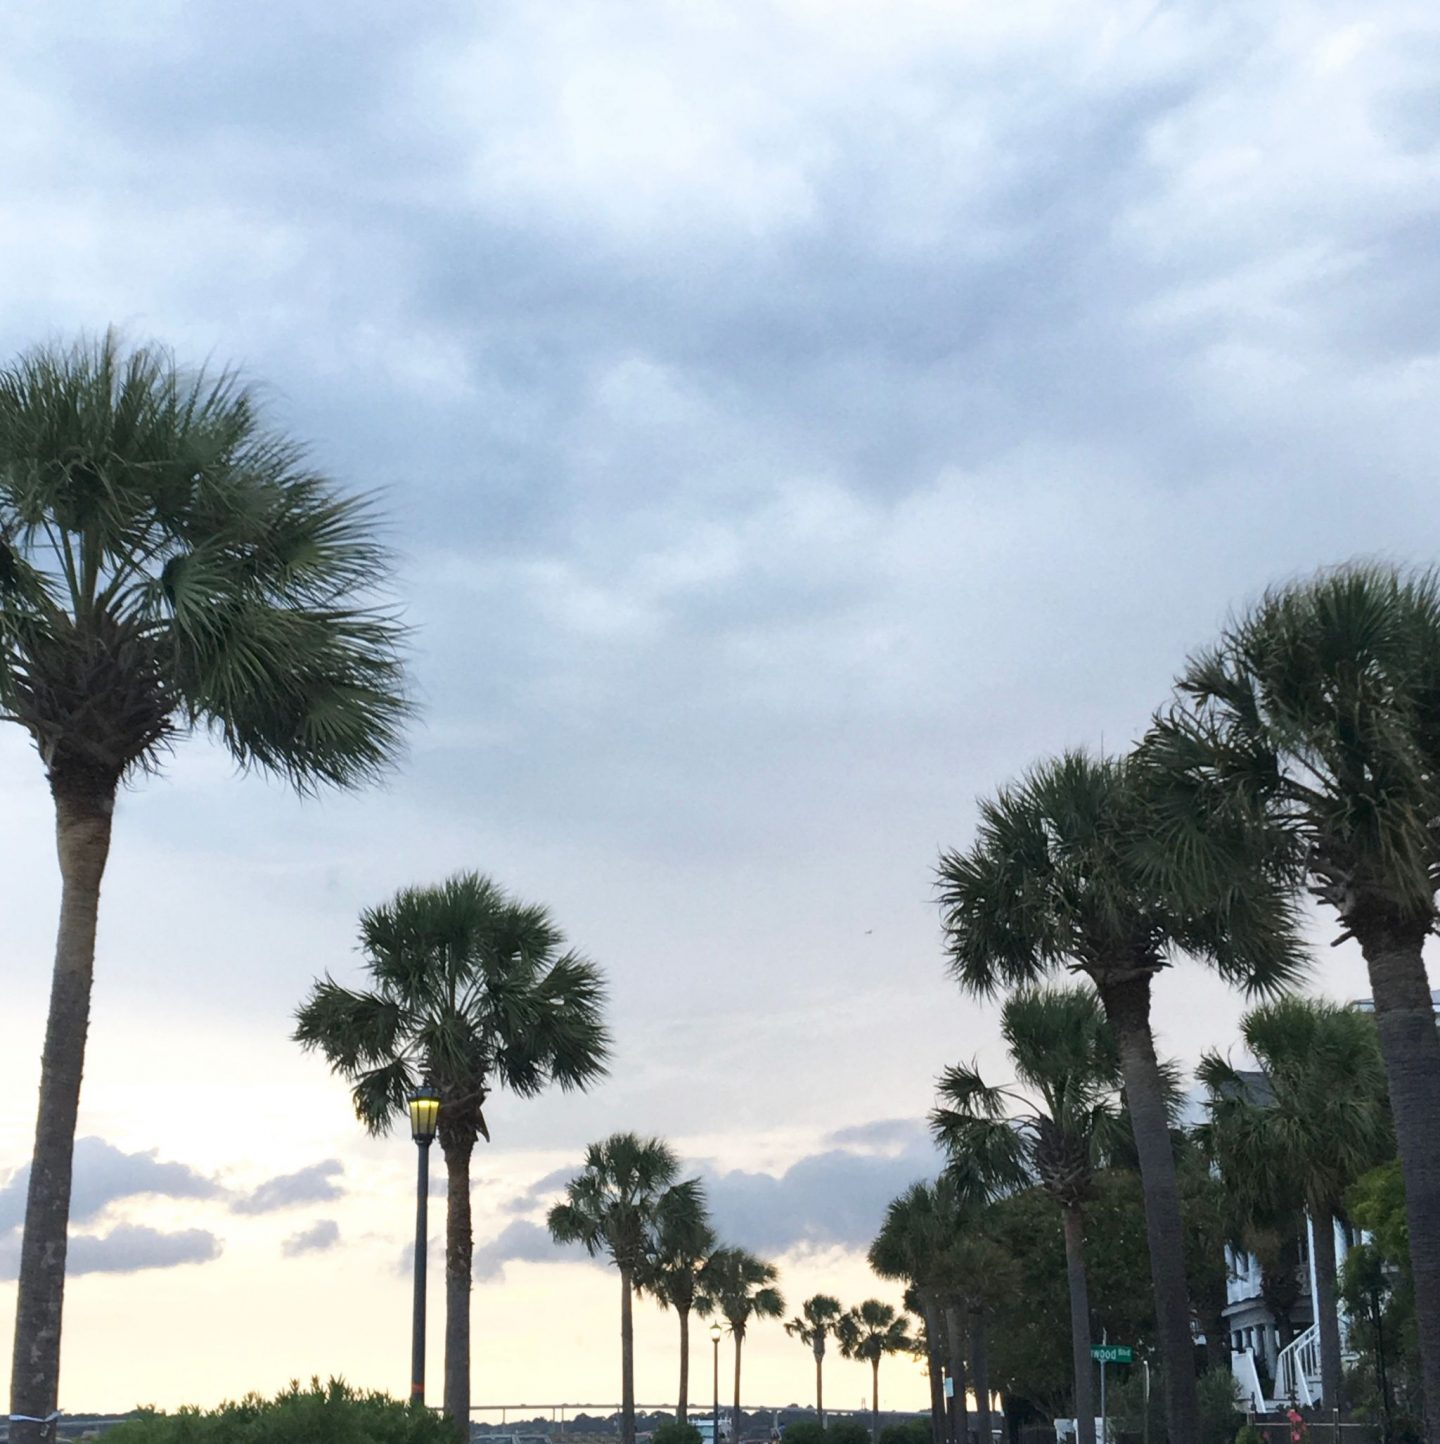 charleston travel guide, charleston sunset, palm trees of charleston